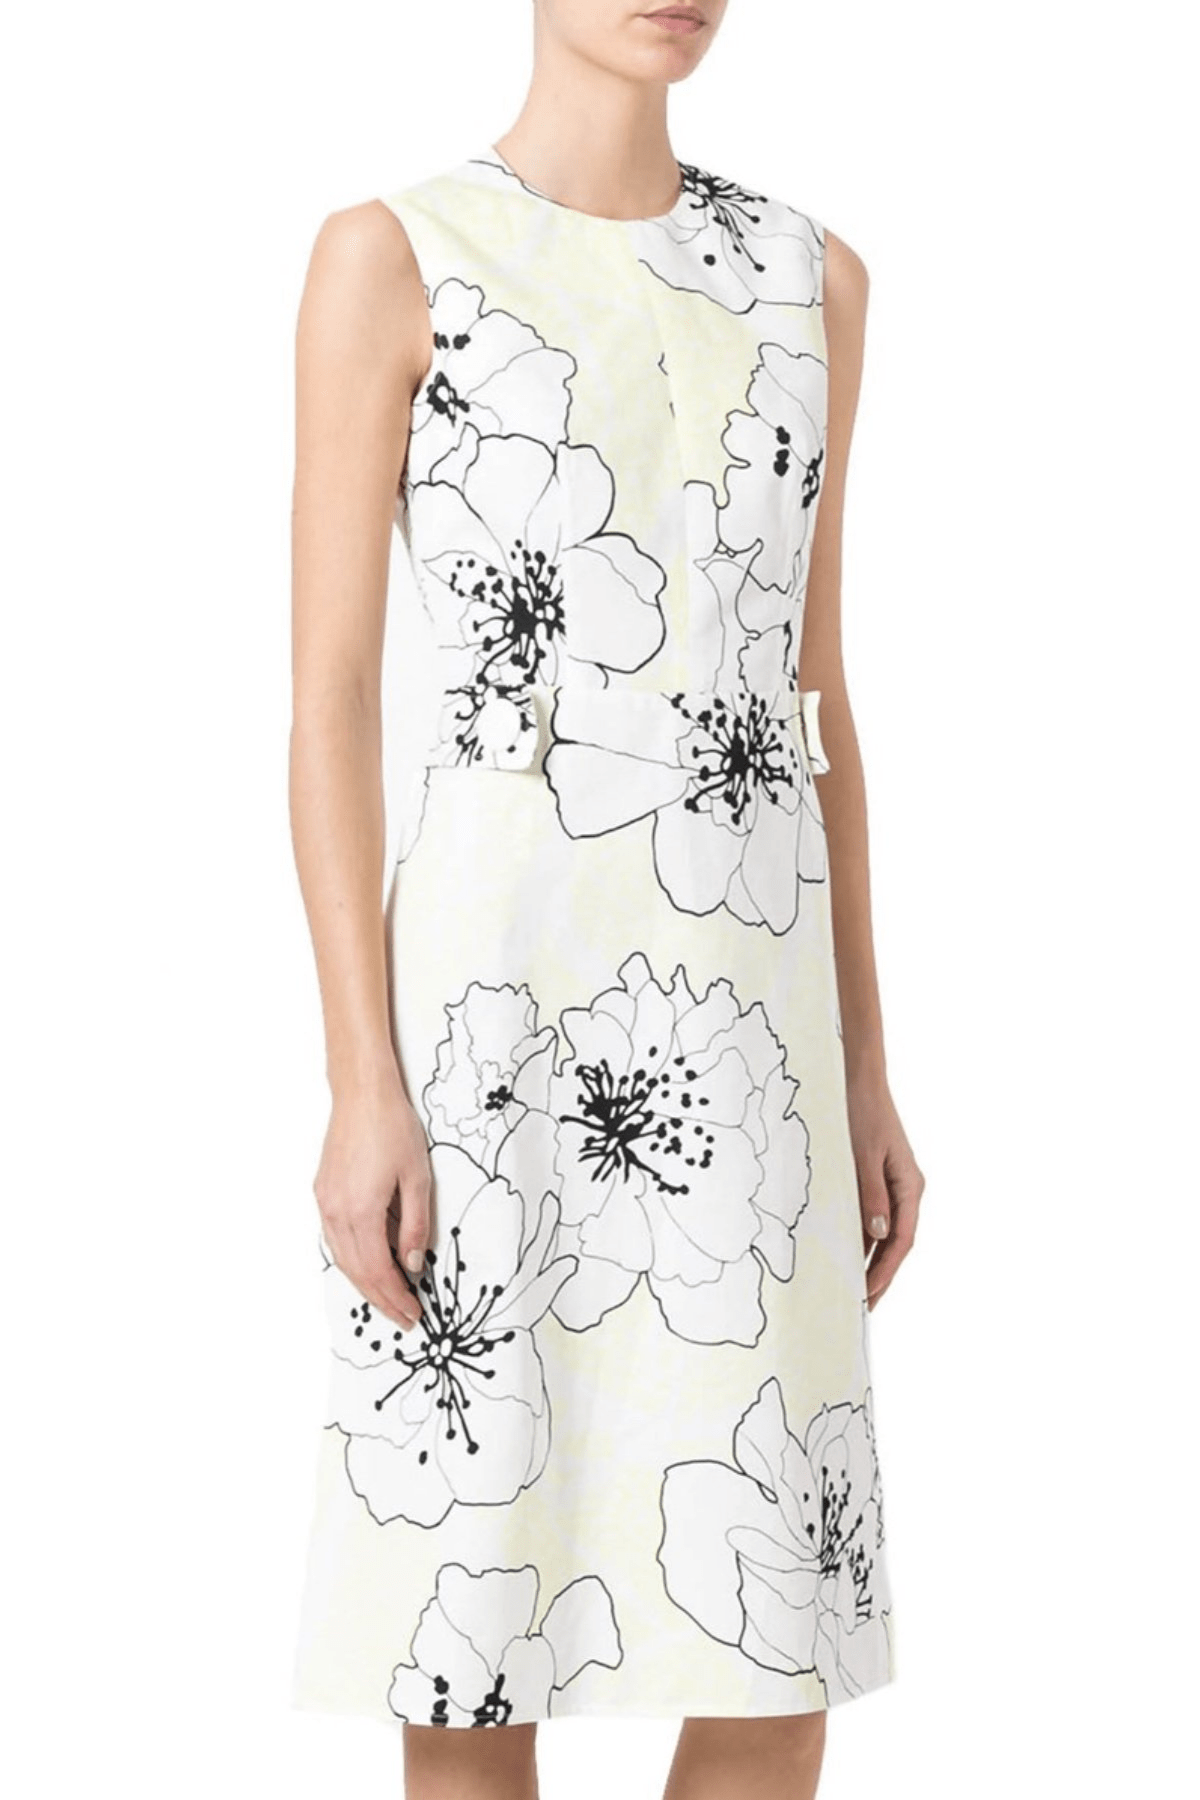 Poplin Posy Print Shift Dress - The Bobby Boga